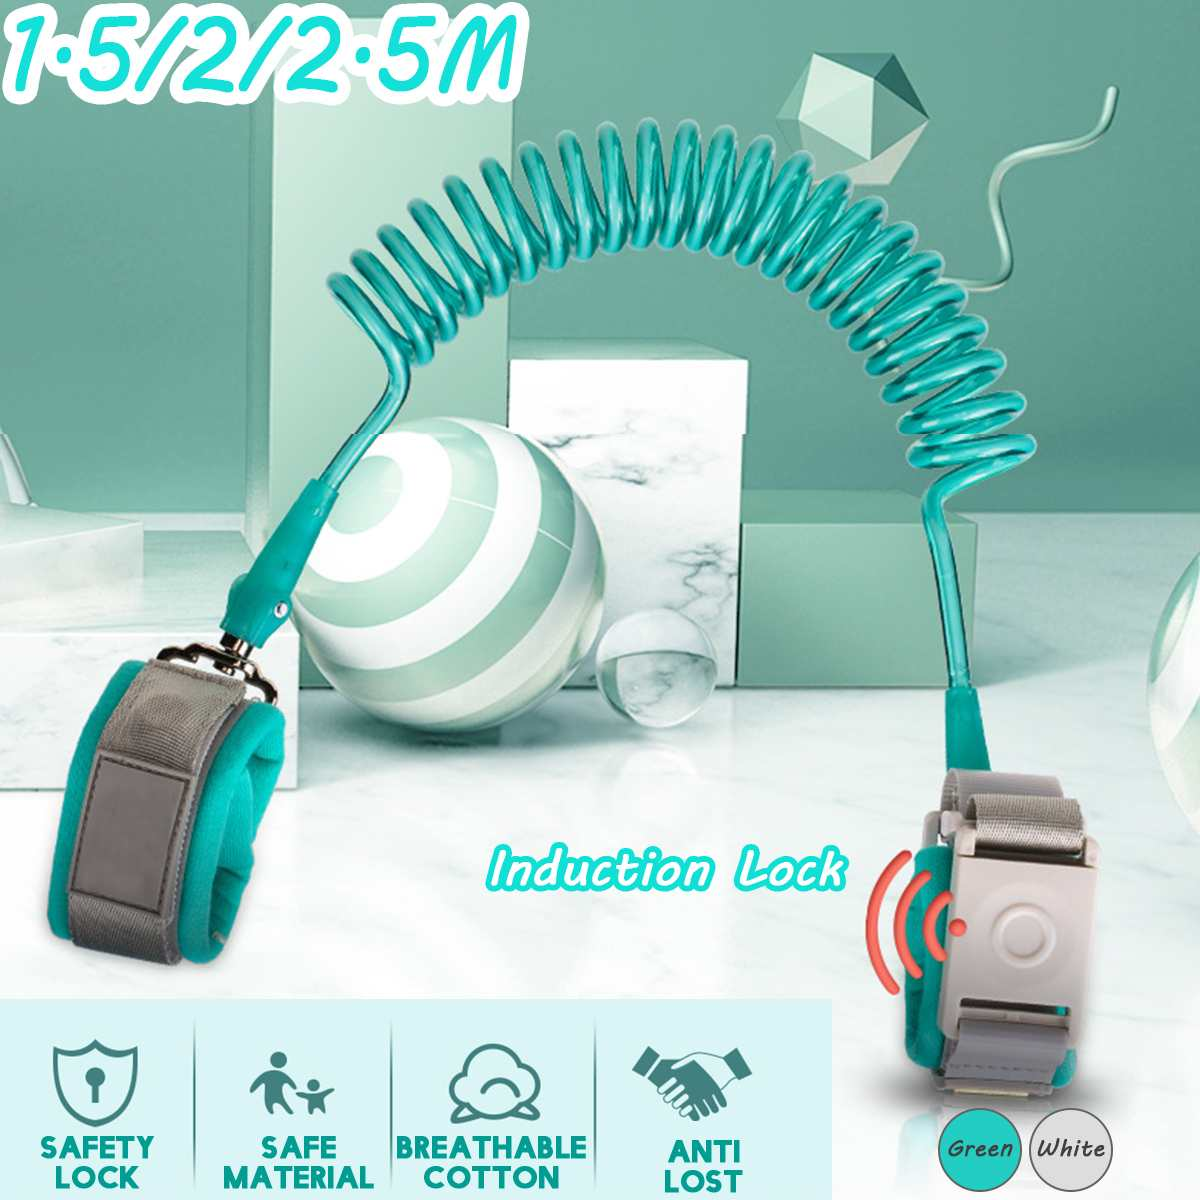 New Anti Lost Wrist Link Magnetic Induction Lock Toddler Leash Safety Harness Baby Strap Wristband Children Walking Hand Belt